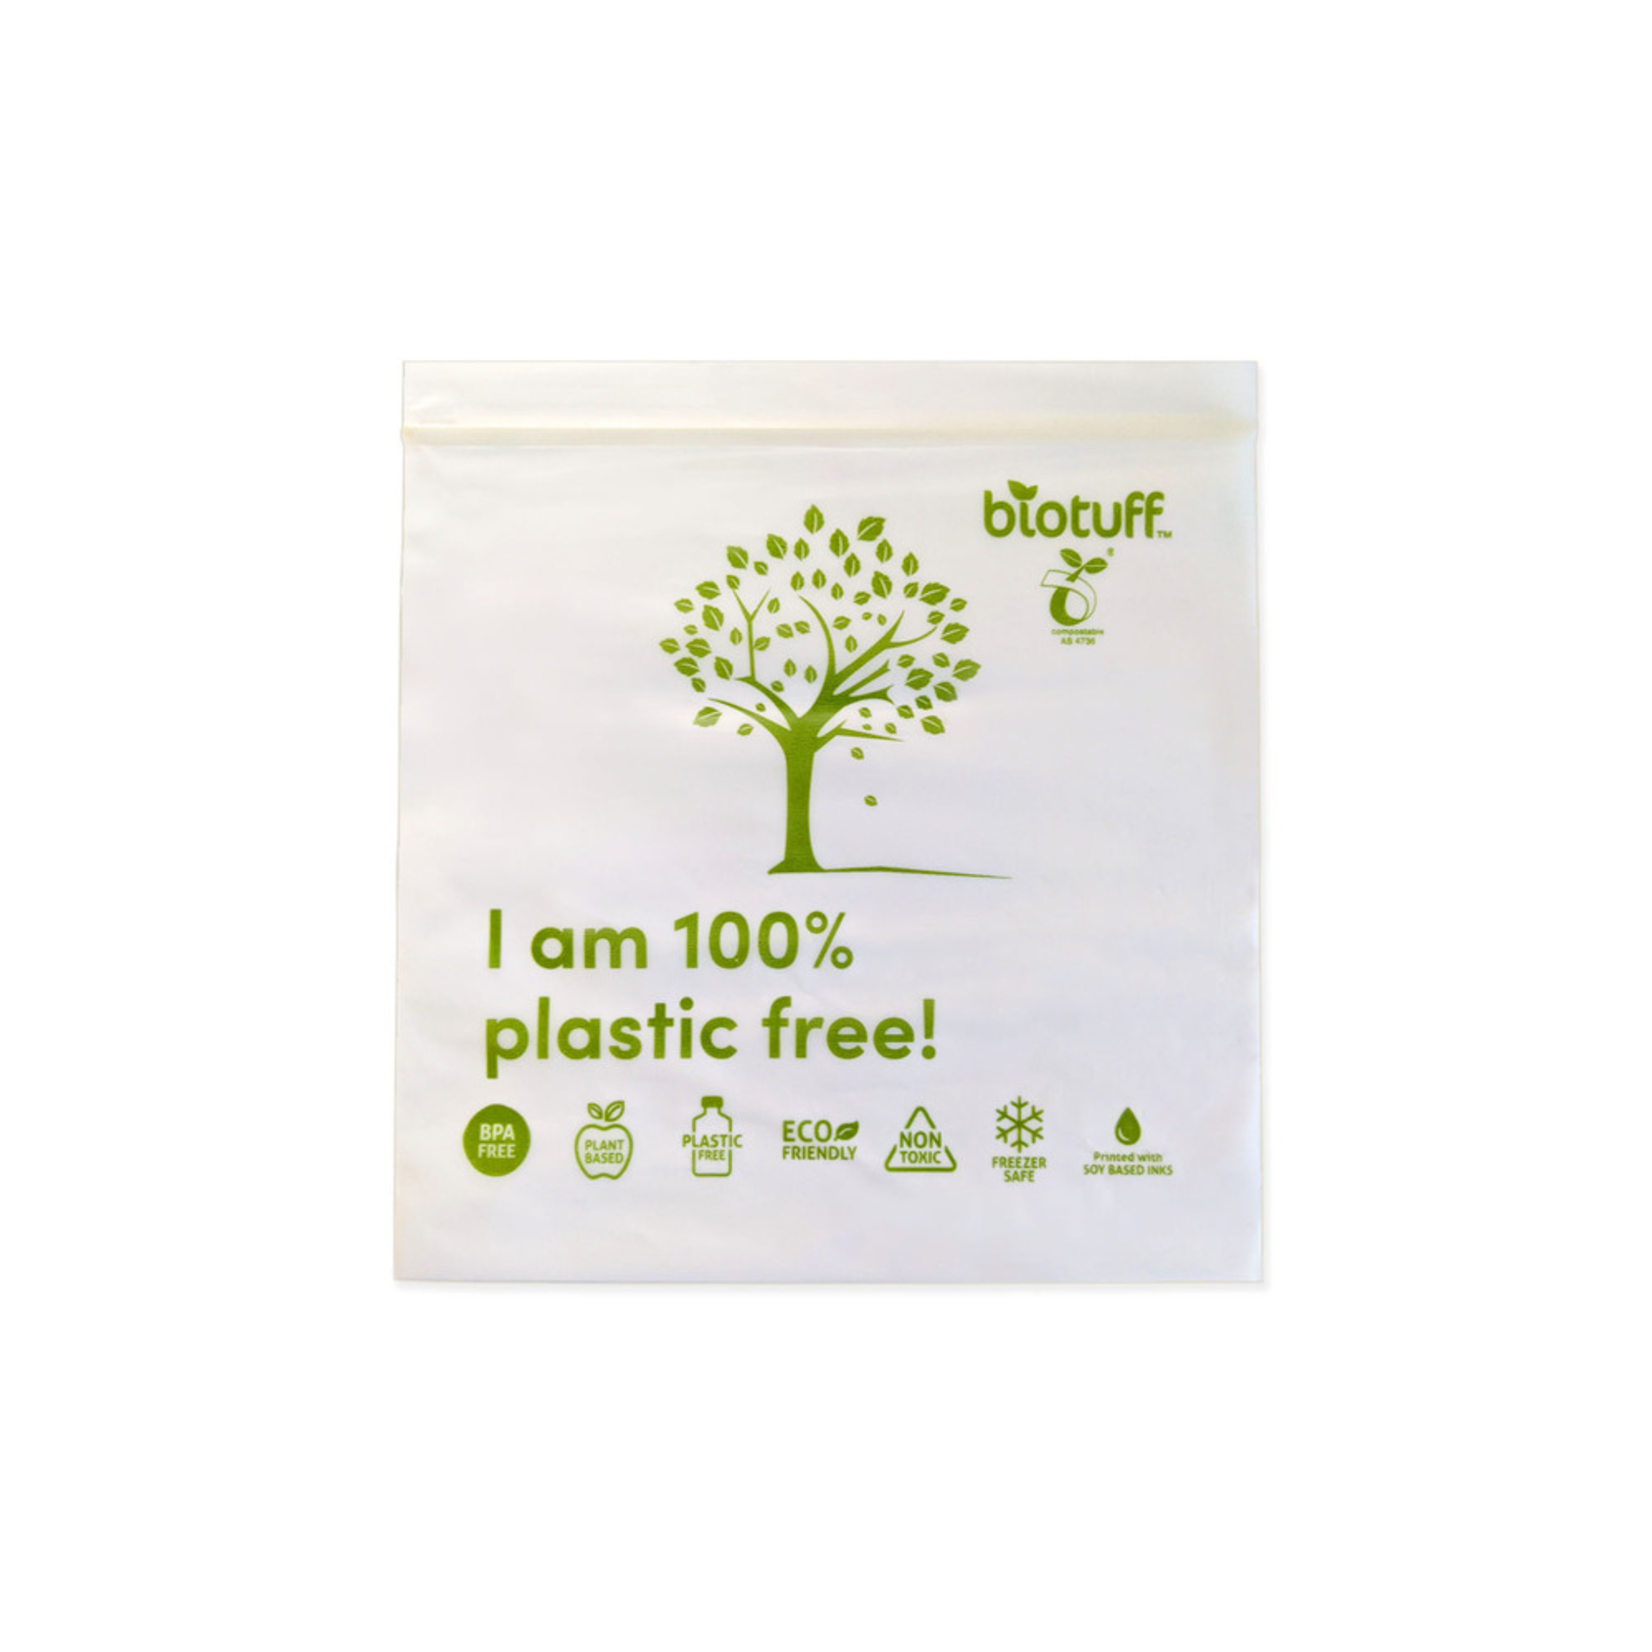 BioTuff Biotuff Compostable Resealable Sandwich Bags